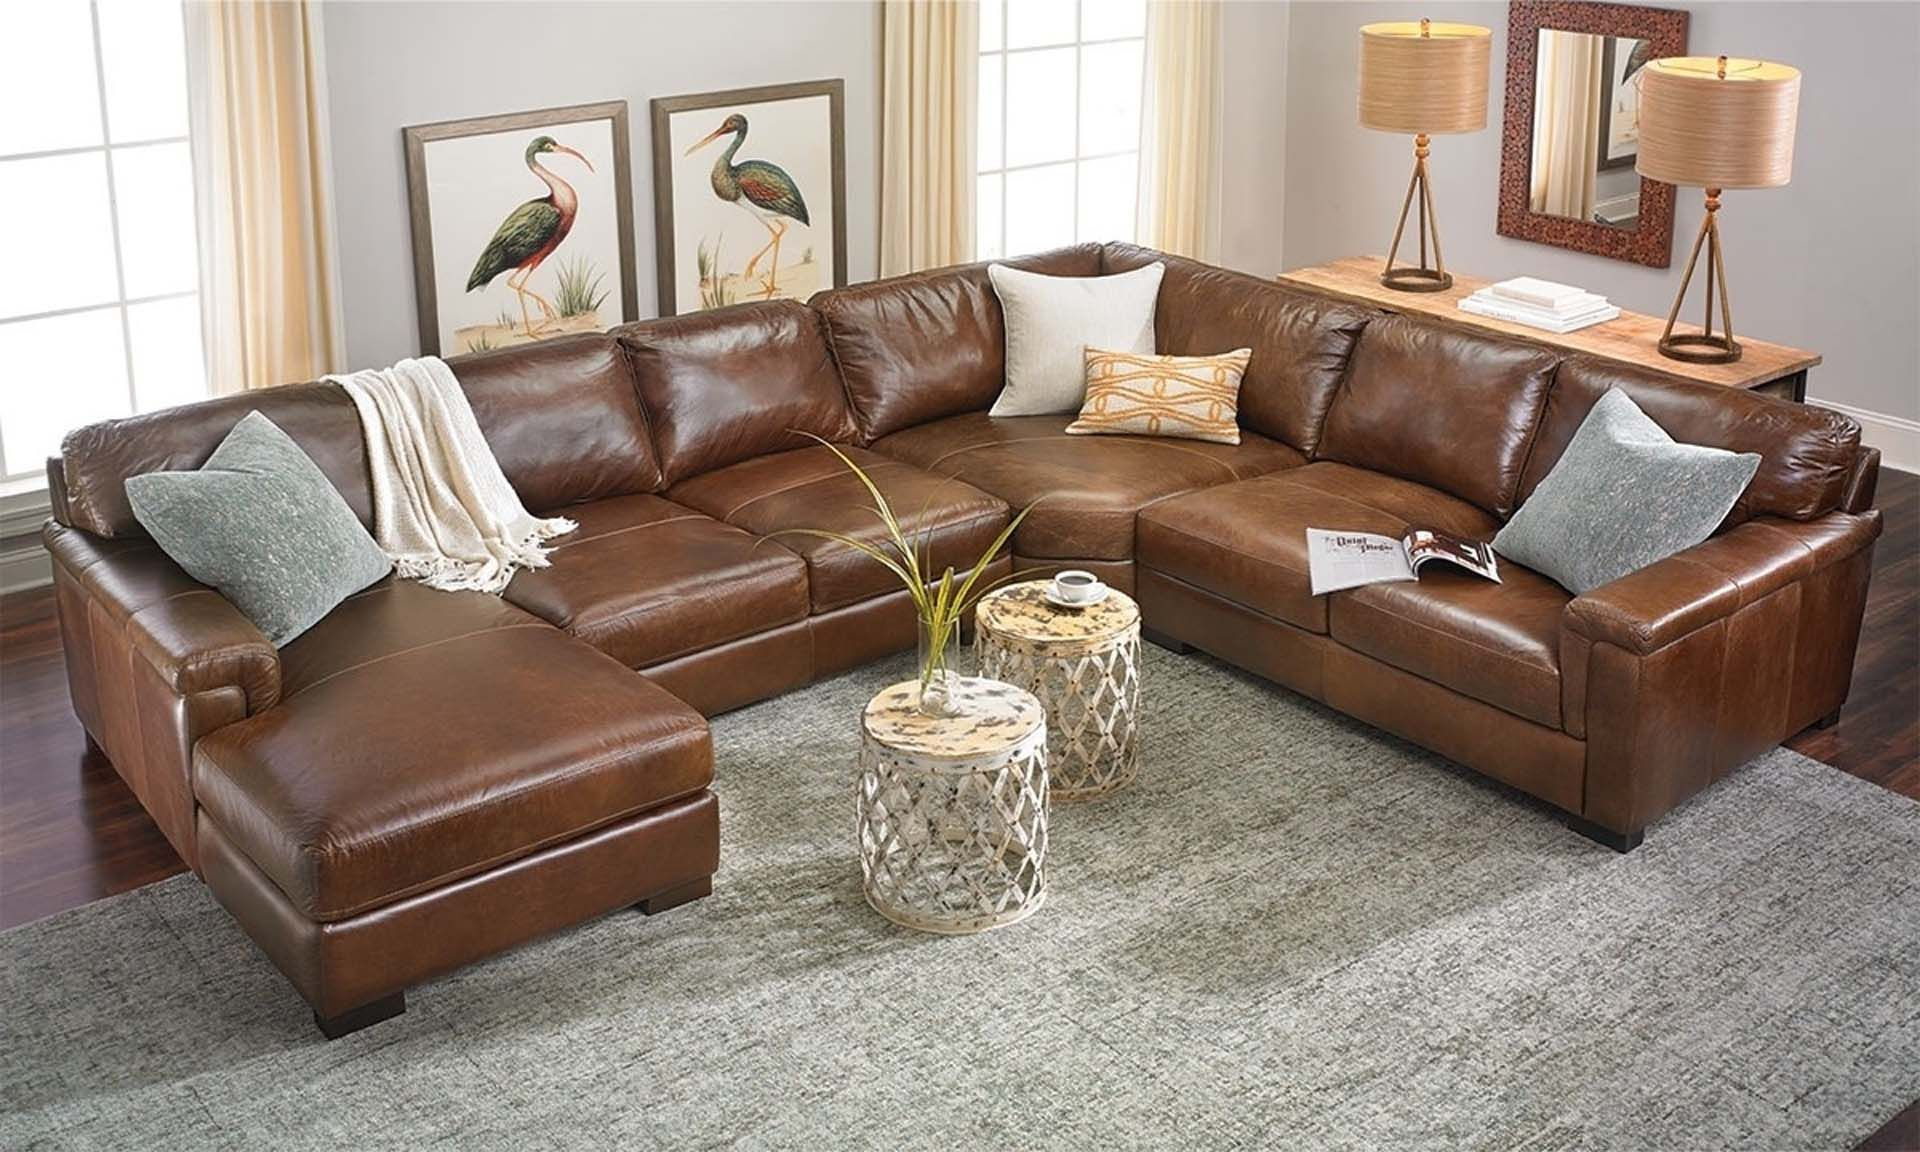 Top Grain Italian Leather Sectional With Left Side Chaise In 2020 Leather Couches Living Room Living Room Leather Sectional Sofas Living Room